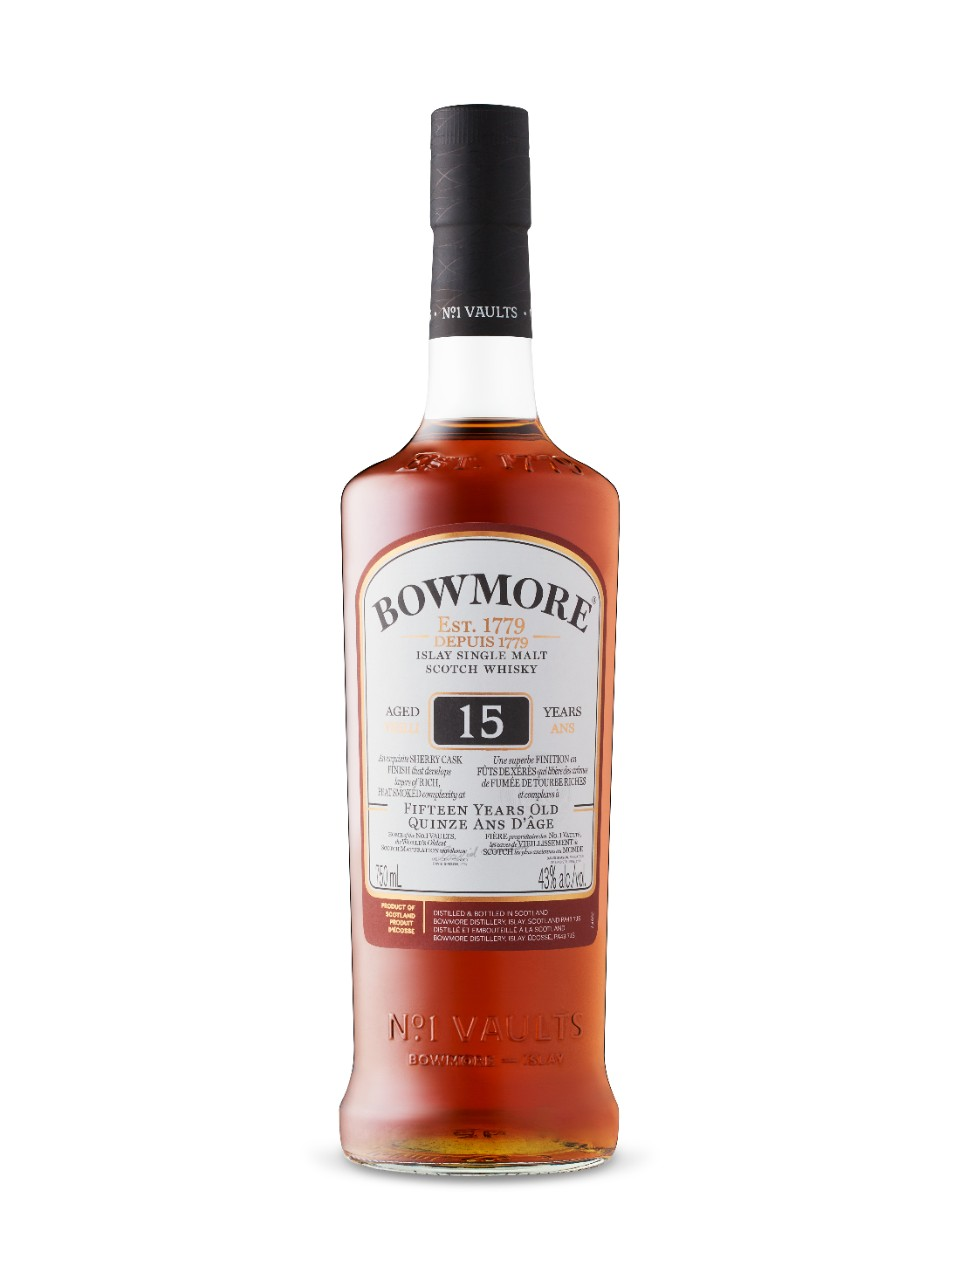 Whisky écossais Single Malt d'Islay Bowmore Darkest 15 ans d'âge